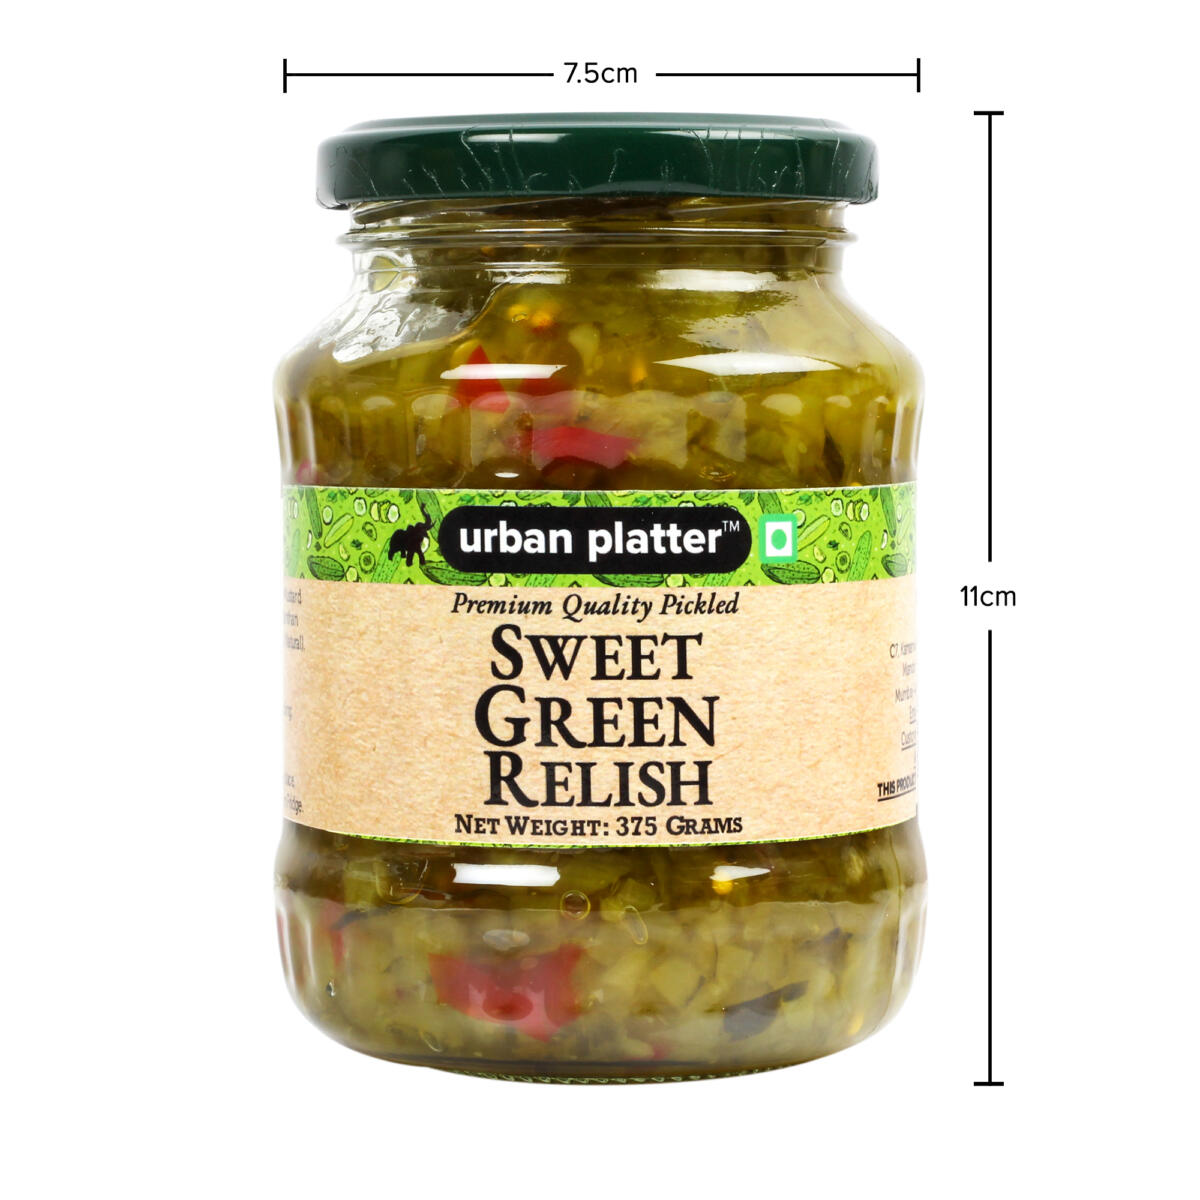 Urban Platter Pickled Sweet Green Relish 375g Urban Platter